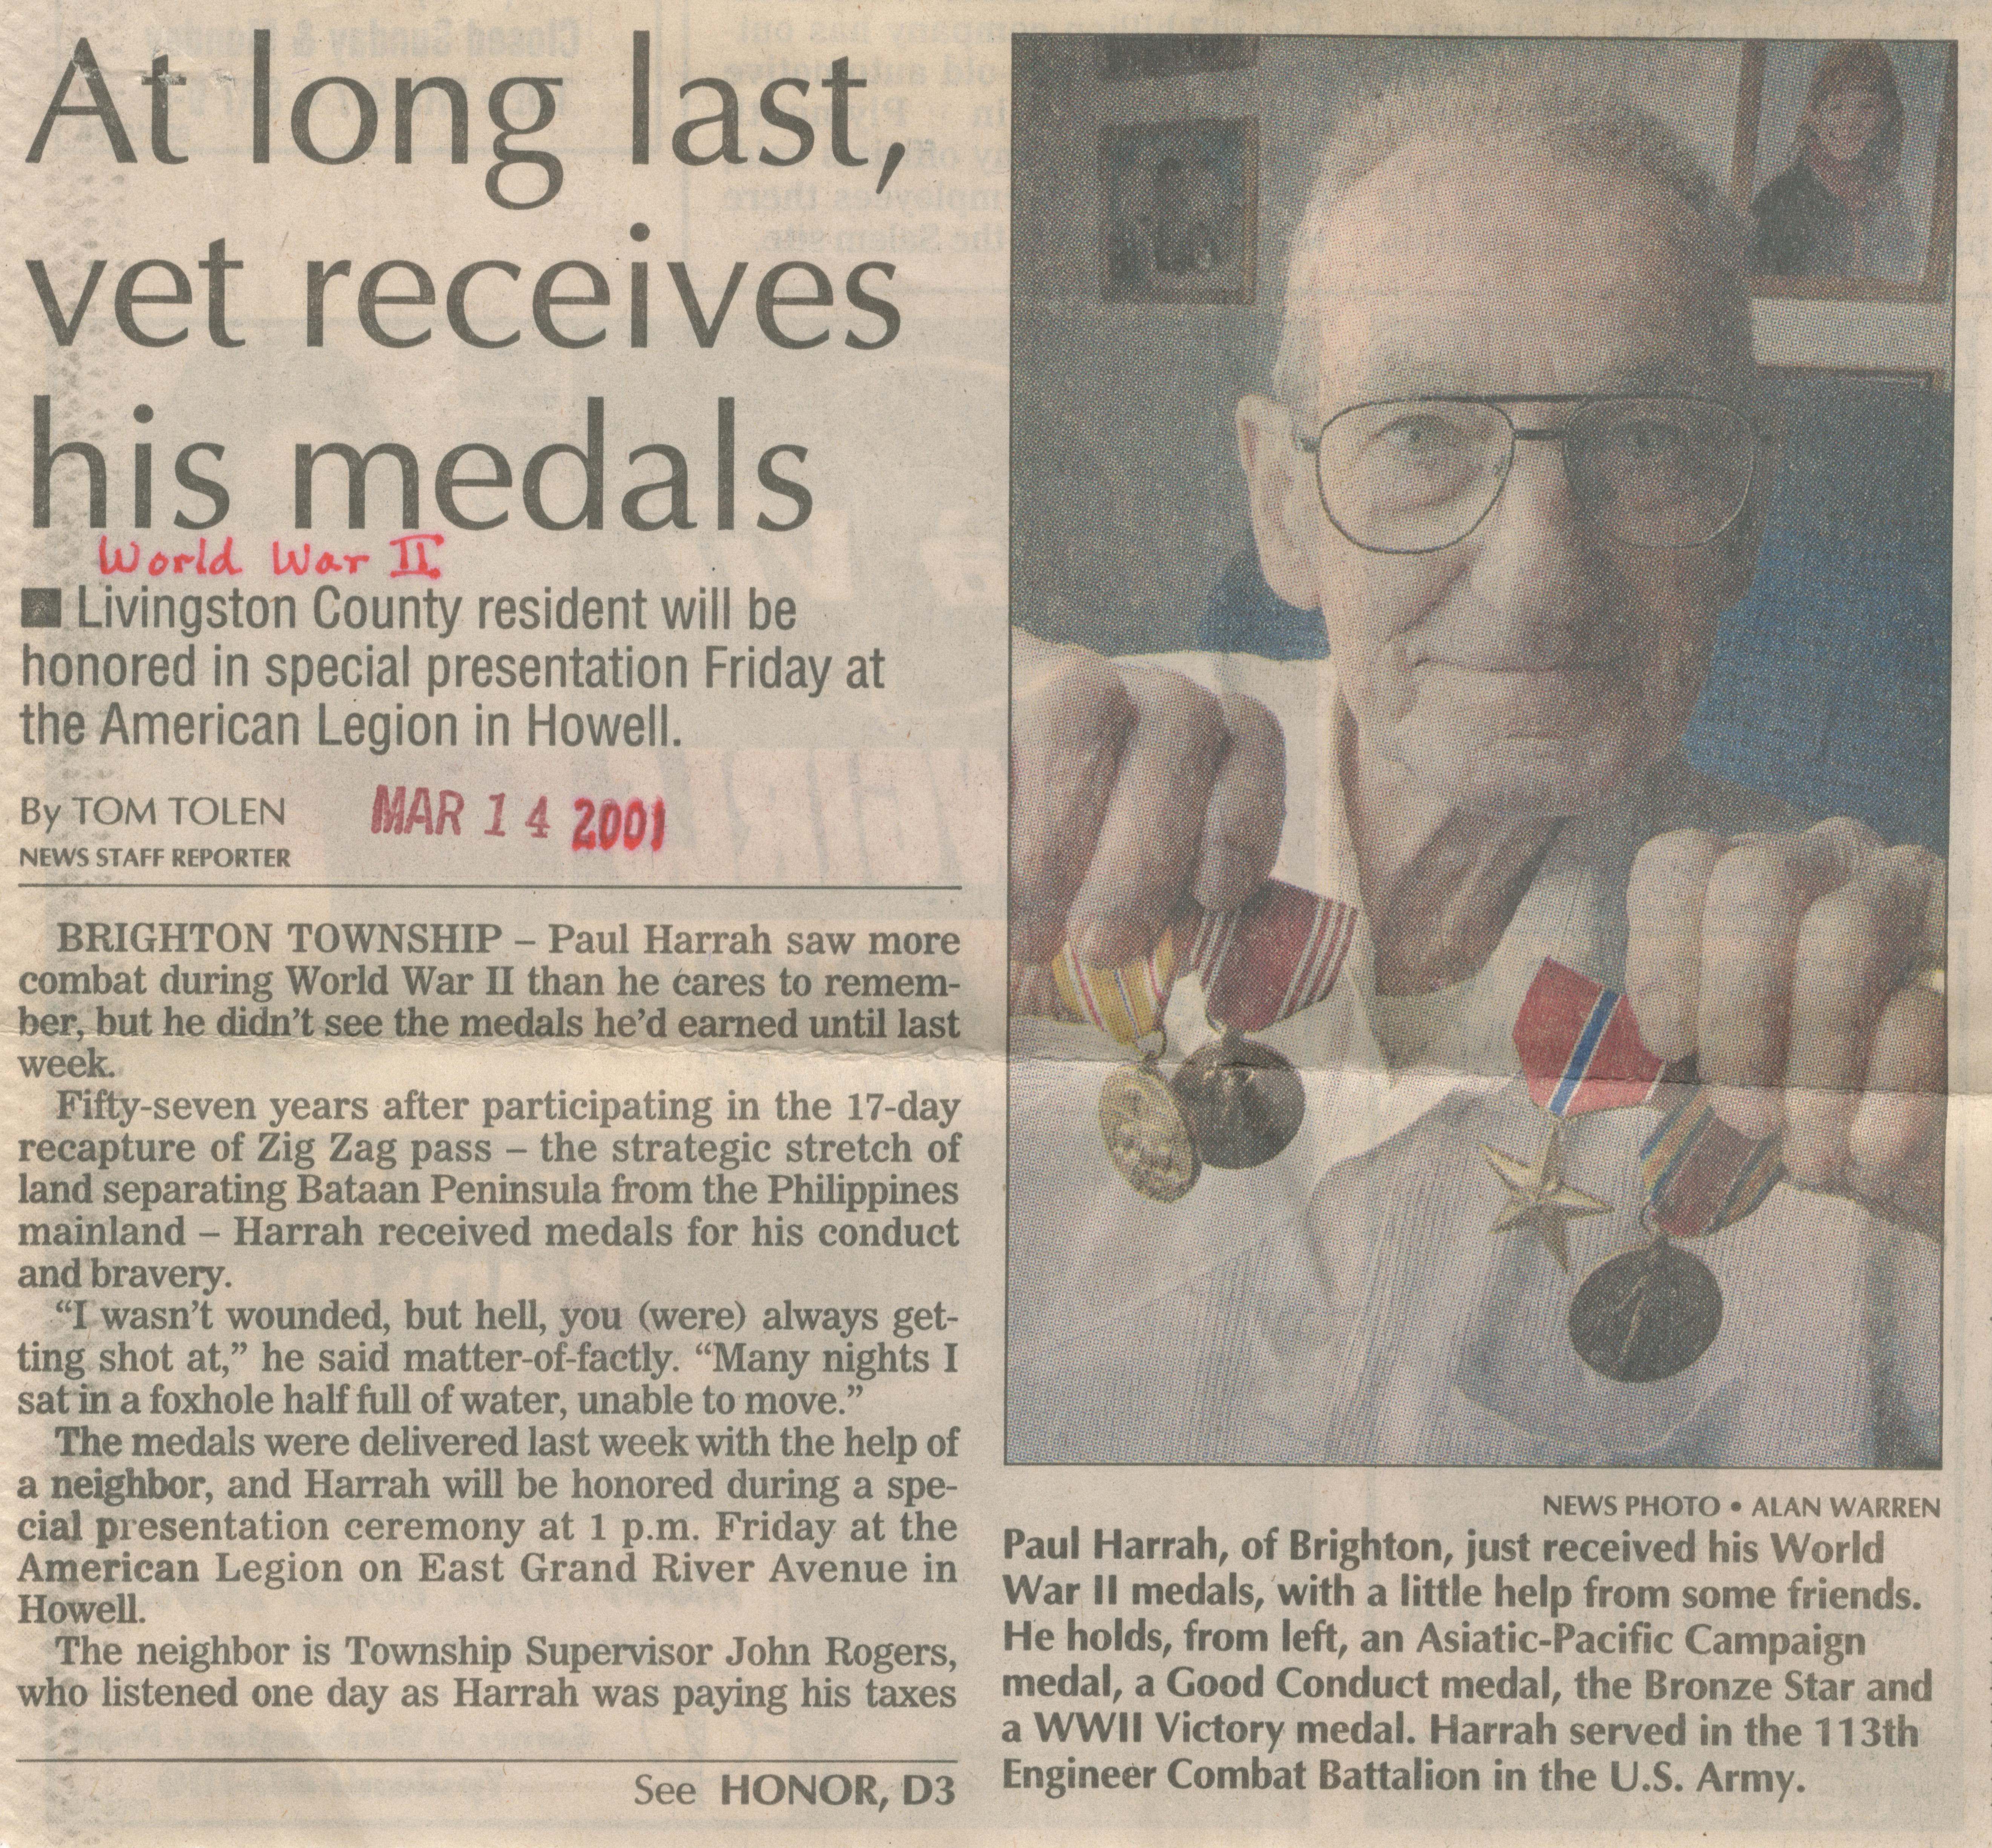 At long last, vet receives his medals image